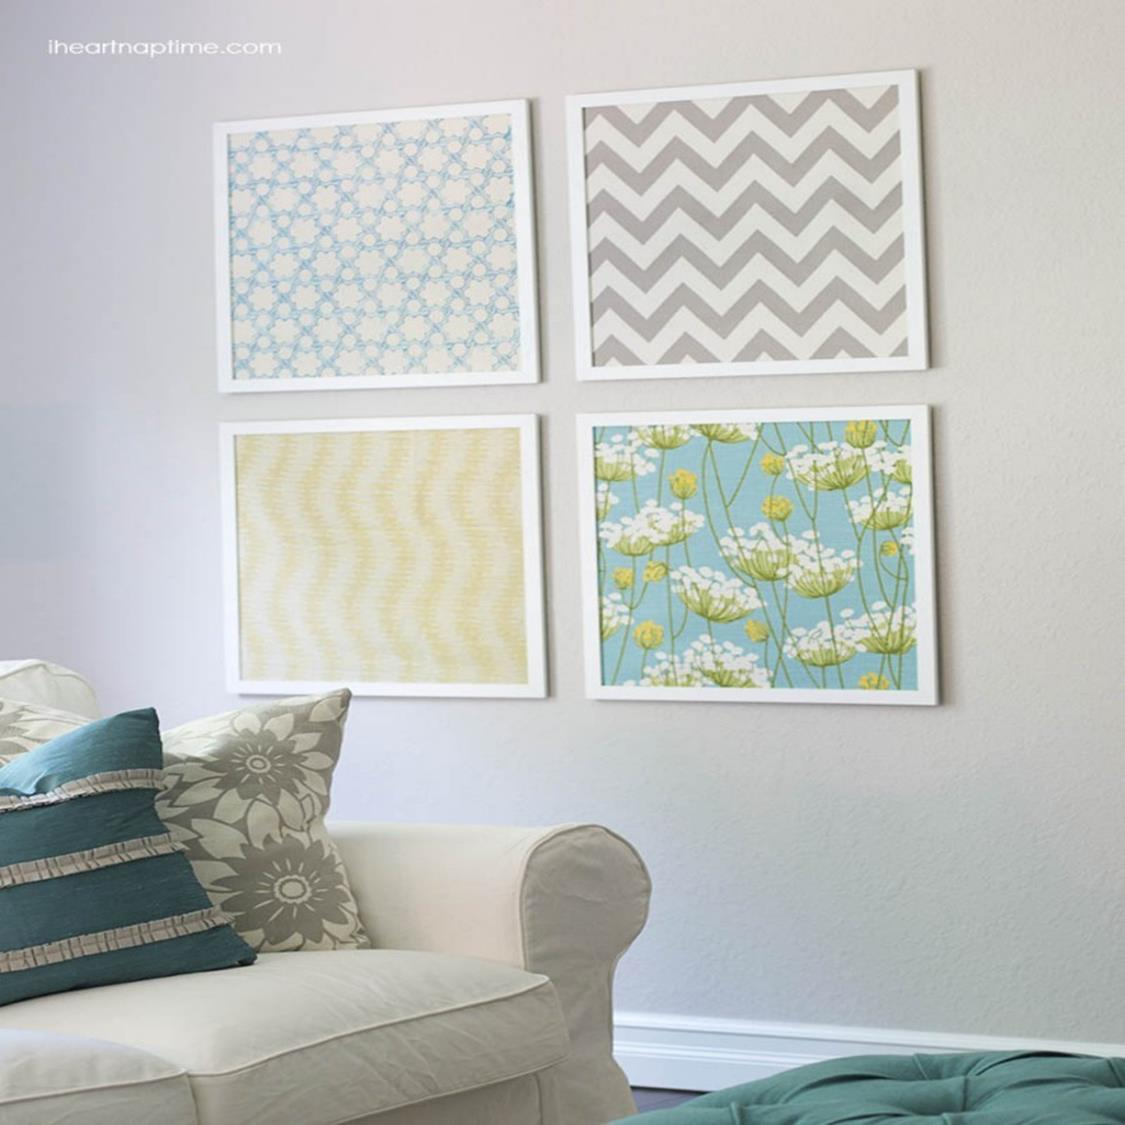 Perfect Bedroom Decorating Idea for Craft 24